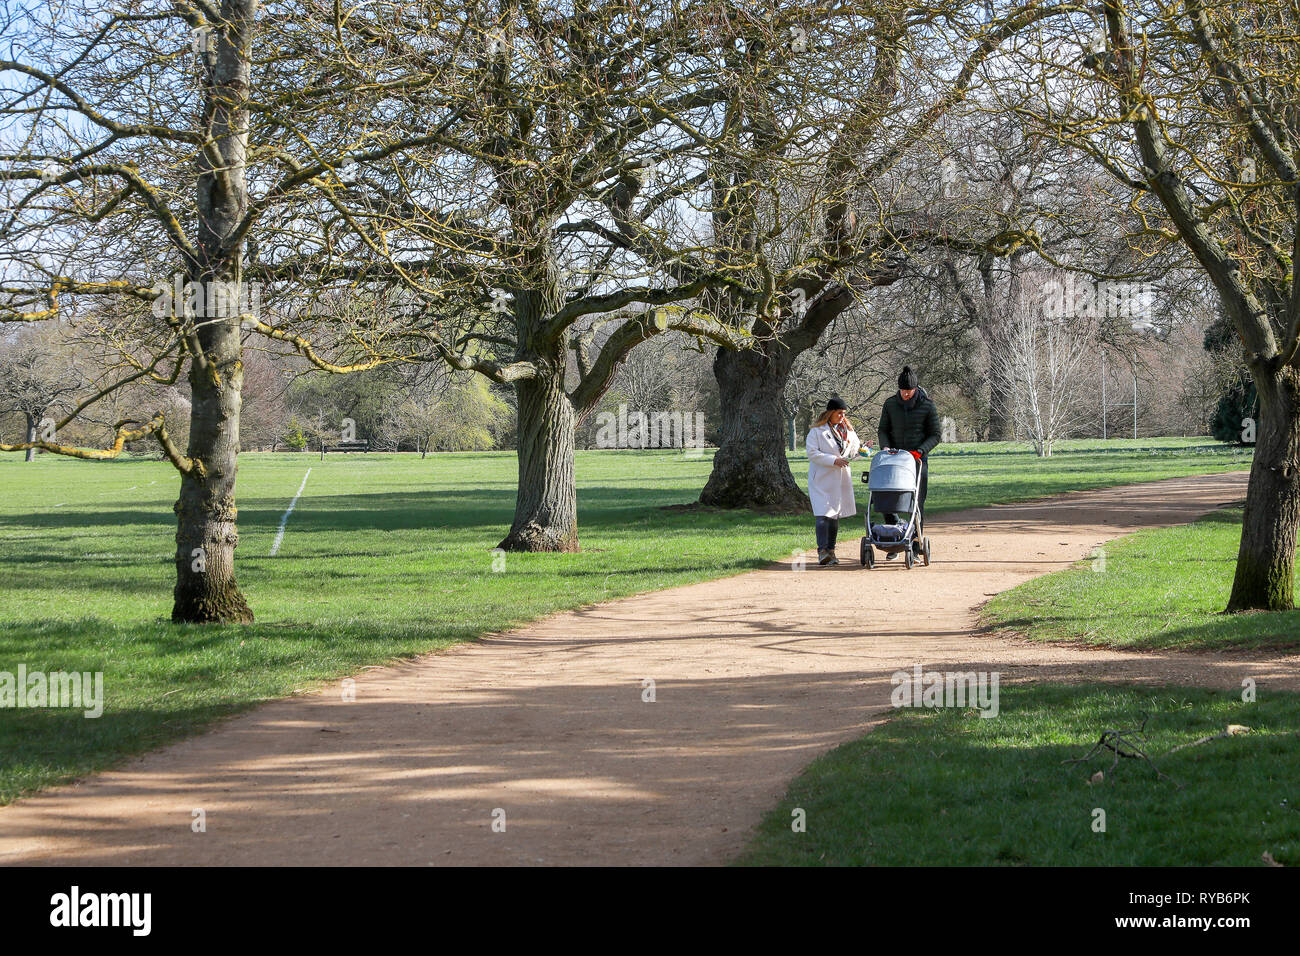 Mother and father walking with a buggy stroller pram on a gravel path in the sunshine in Oxford University Parks in winter / spring - Stock Image